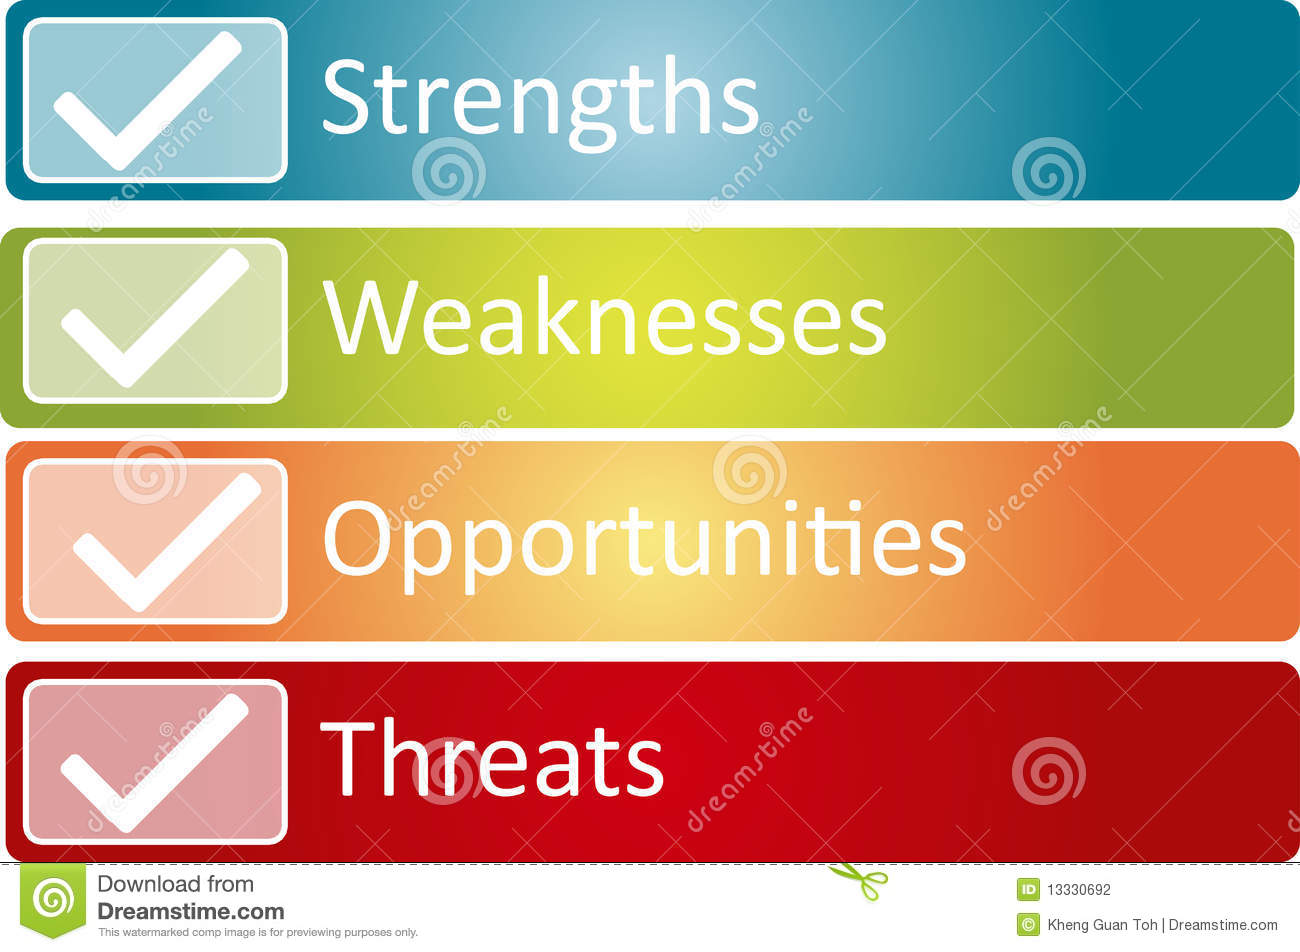 kao corporation swot analysis Vf corporation swot analysis strengths  below are the strengths, weaknesses, opportunities & threats (swot) of vf corporation : 1the brand has over 1000 stores all around the world and employees nearly 50,000 employees 2 the brand is very innovative and is one of the companies in the world to have a innovation fund which holds different.